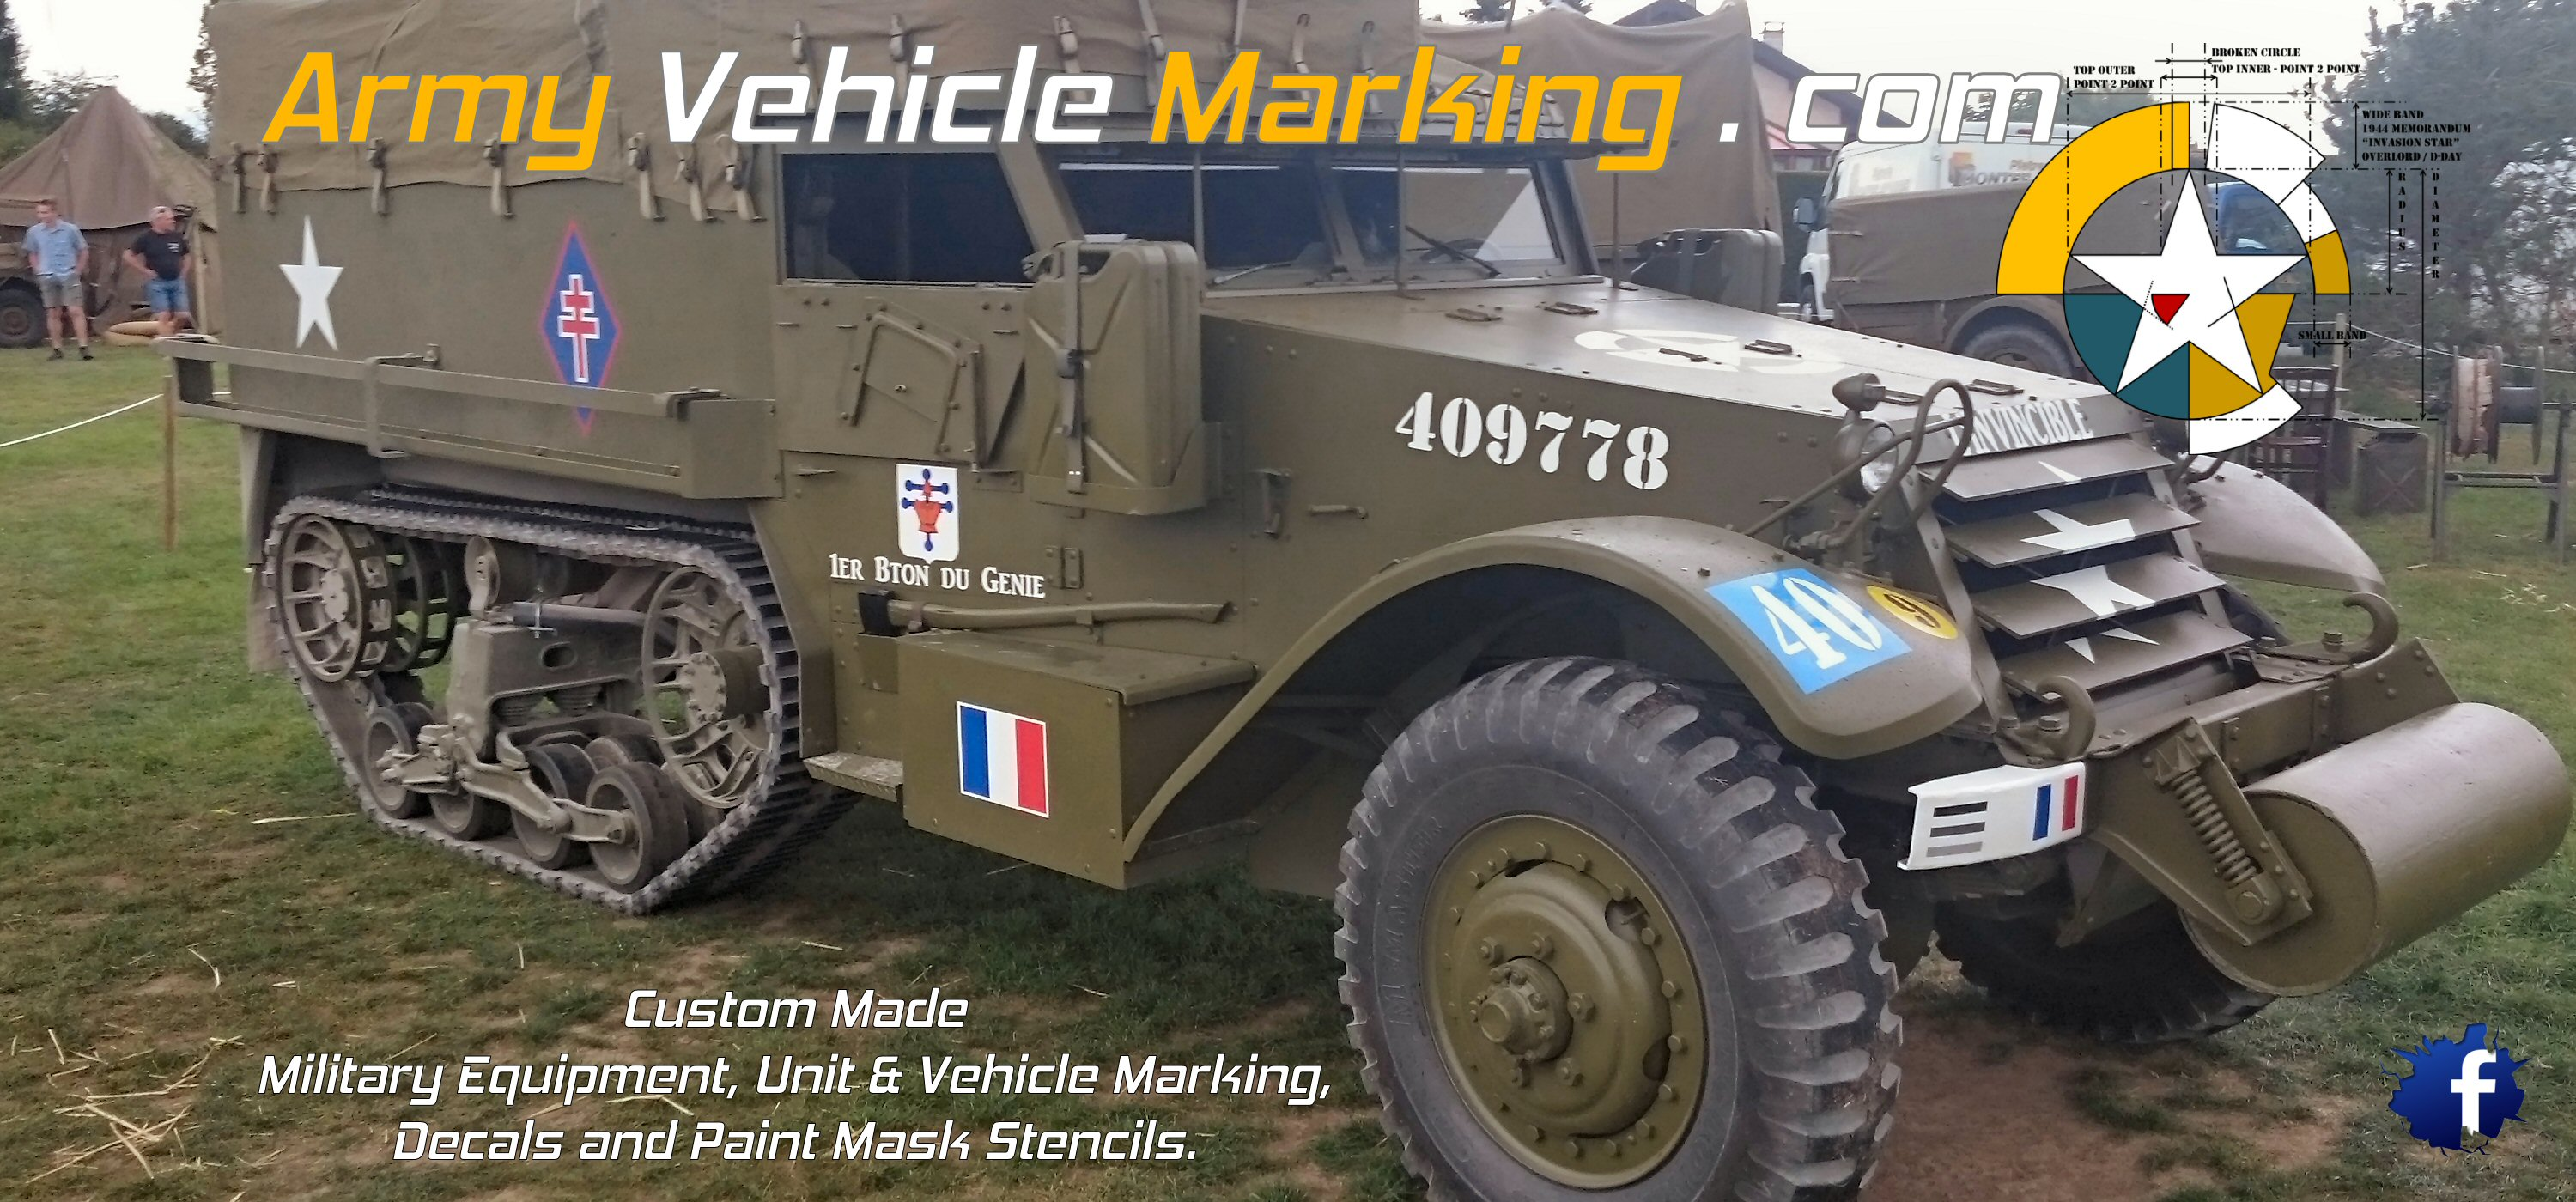 2017m07 AVM FB Halftrack